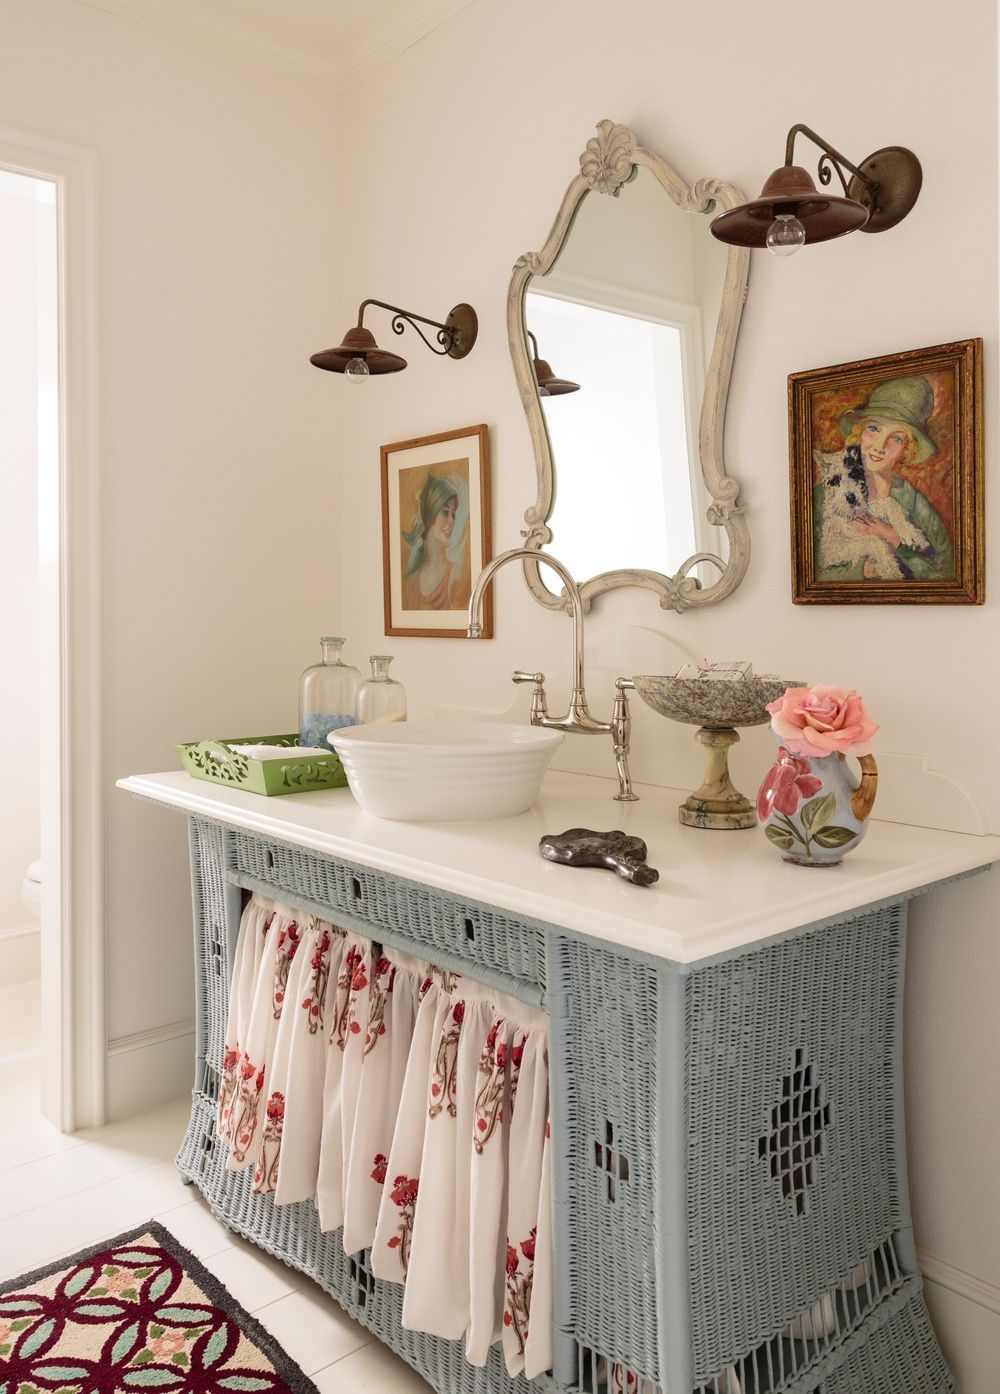 Badezimmer ideen creme mark lohman  beautiful bathrooms  pinterest  decorating and interiors